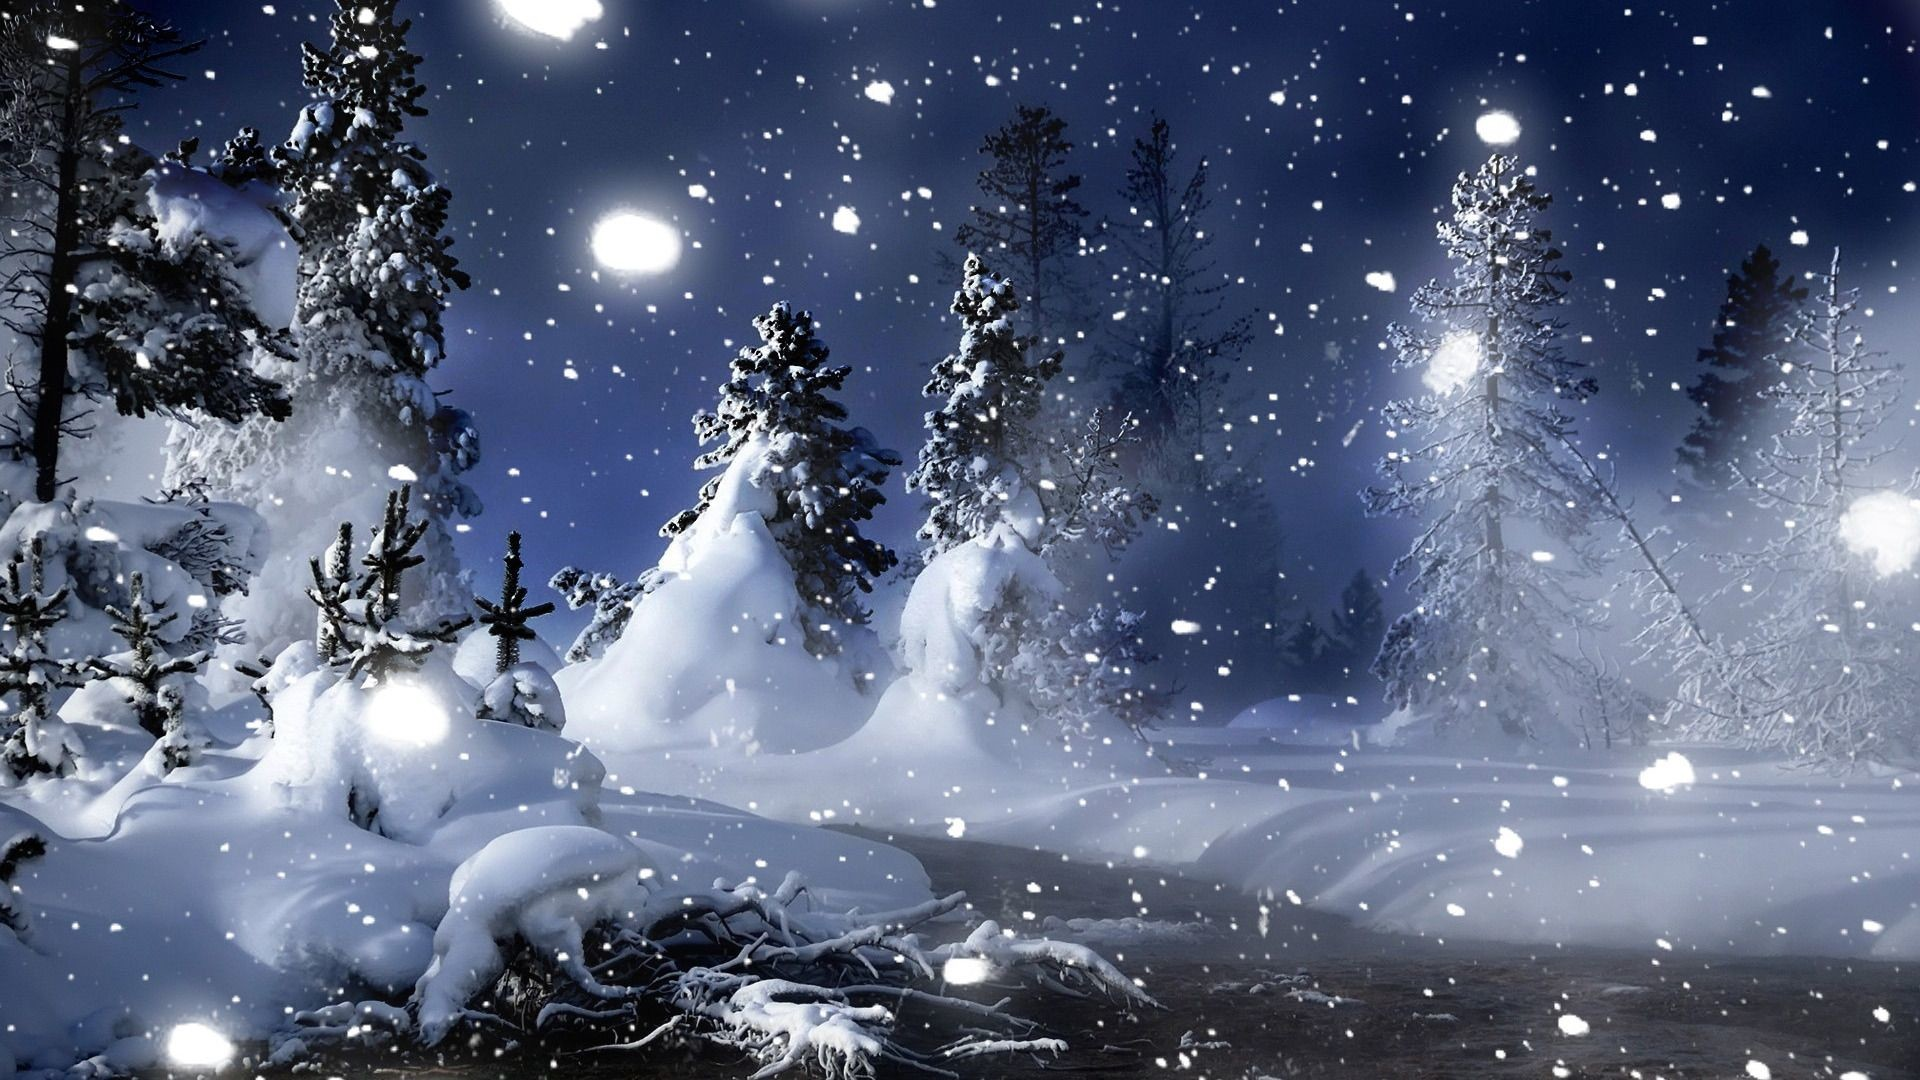 Snow At Night Wallpaper posted by Sarah Simpson